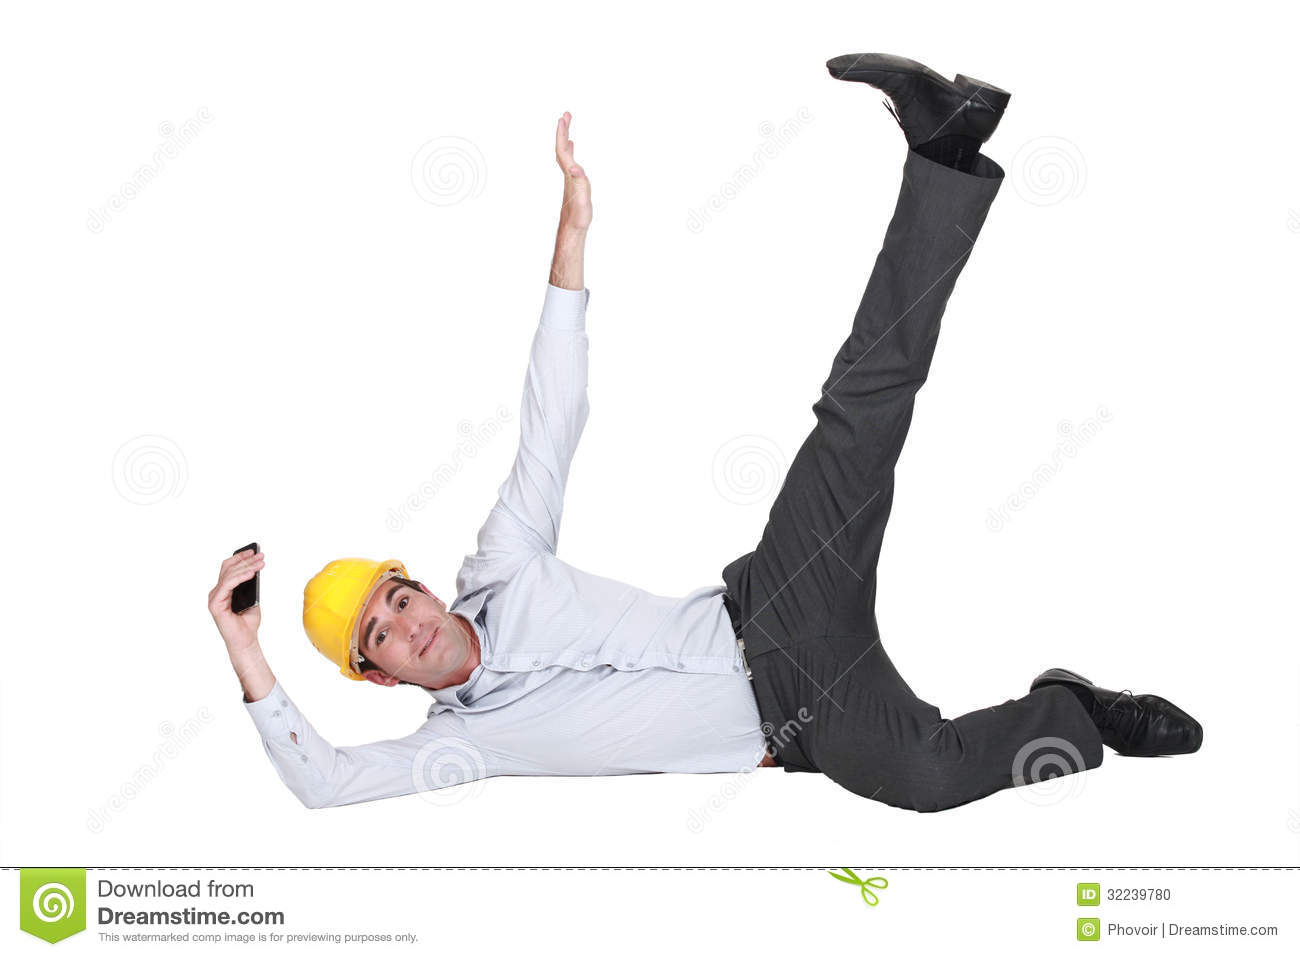 An Architect In A Weird Pose. Stock Photo - Image: 32239780